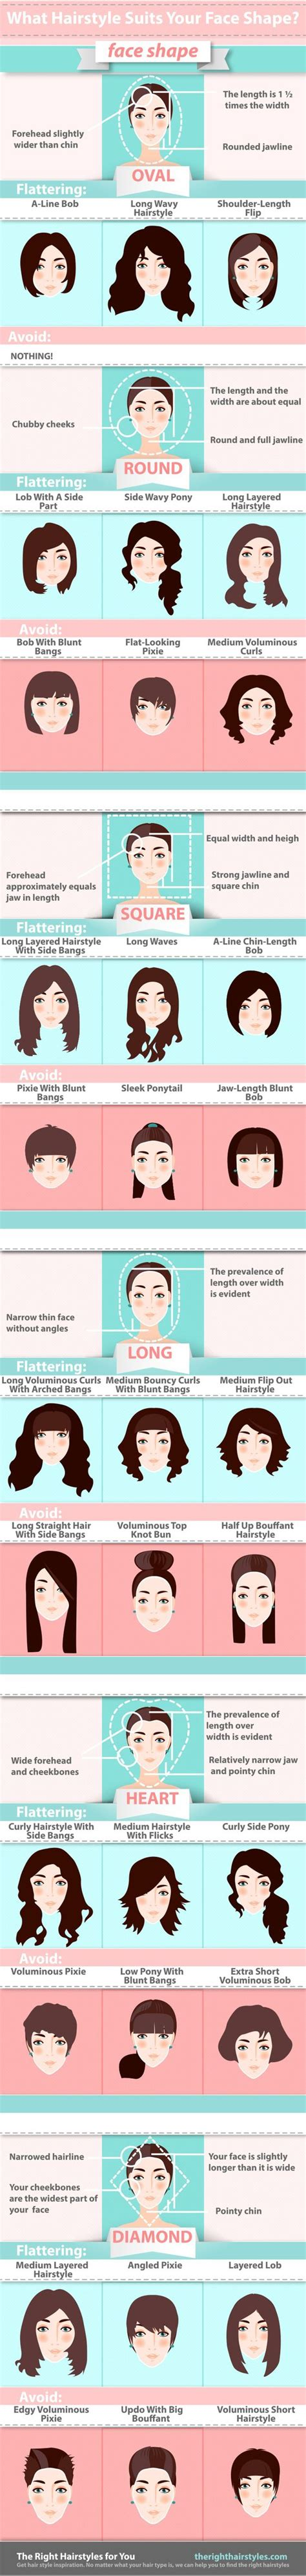 hairstyle ideas to suit face shape what hairstyle suits you according to your face shape